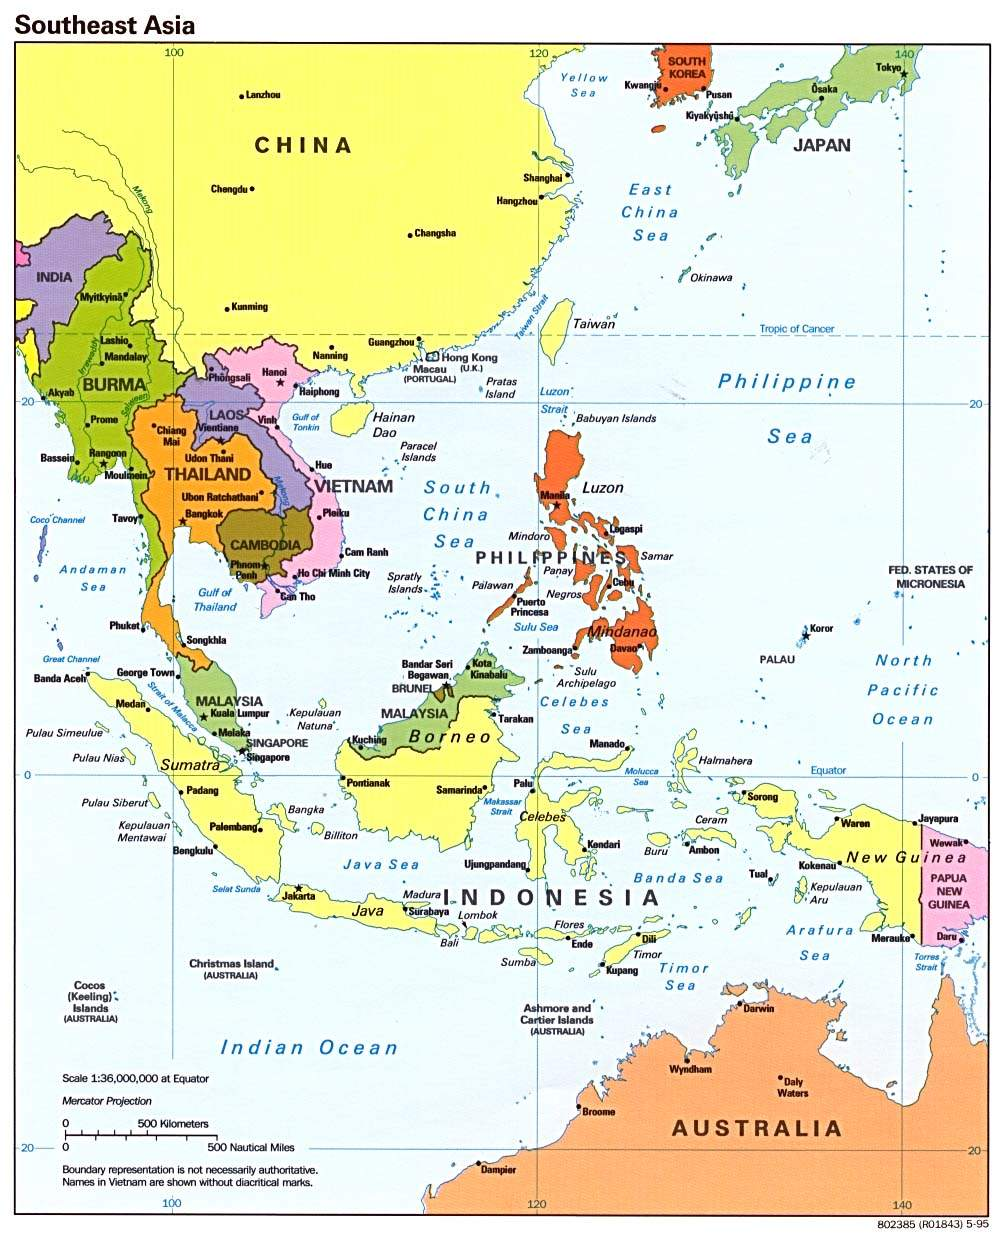 Se Asia Pol 95 large map